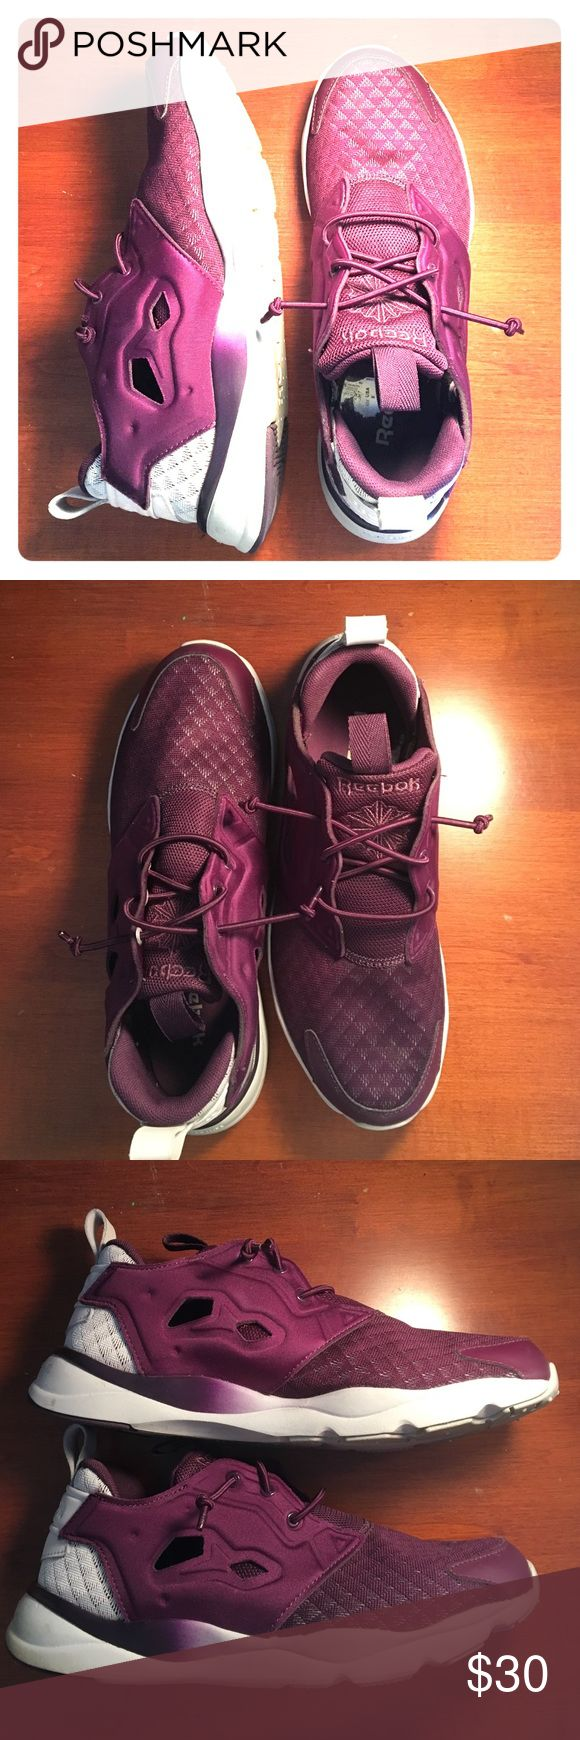 Purple Reebok Furylite Sneakers Purple no-tie furylites have white soles and white accents on the back. Slight discolor of the white under soles, shoes have been worn 5-10 times total. Shoes have a breathable, diamond fabric with solid purple side pieces. Reebok Shoes Sneakers